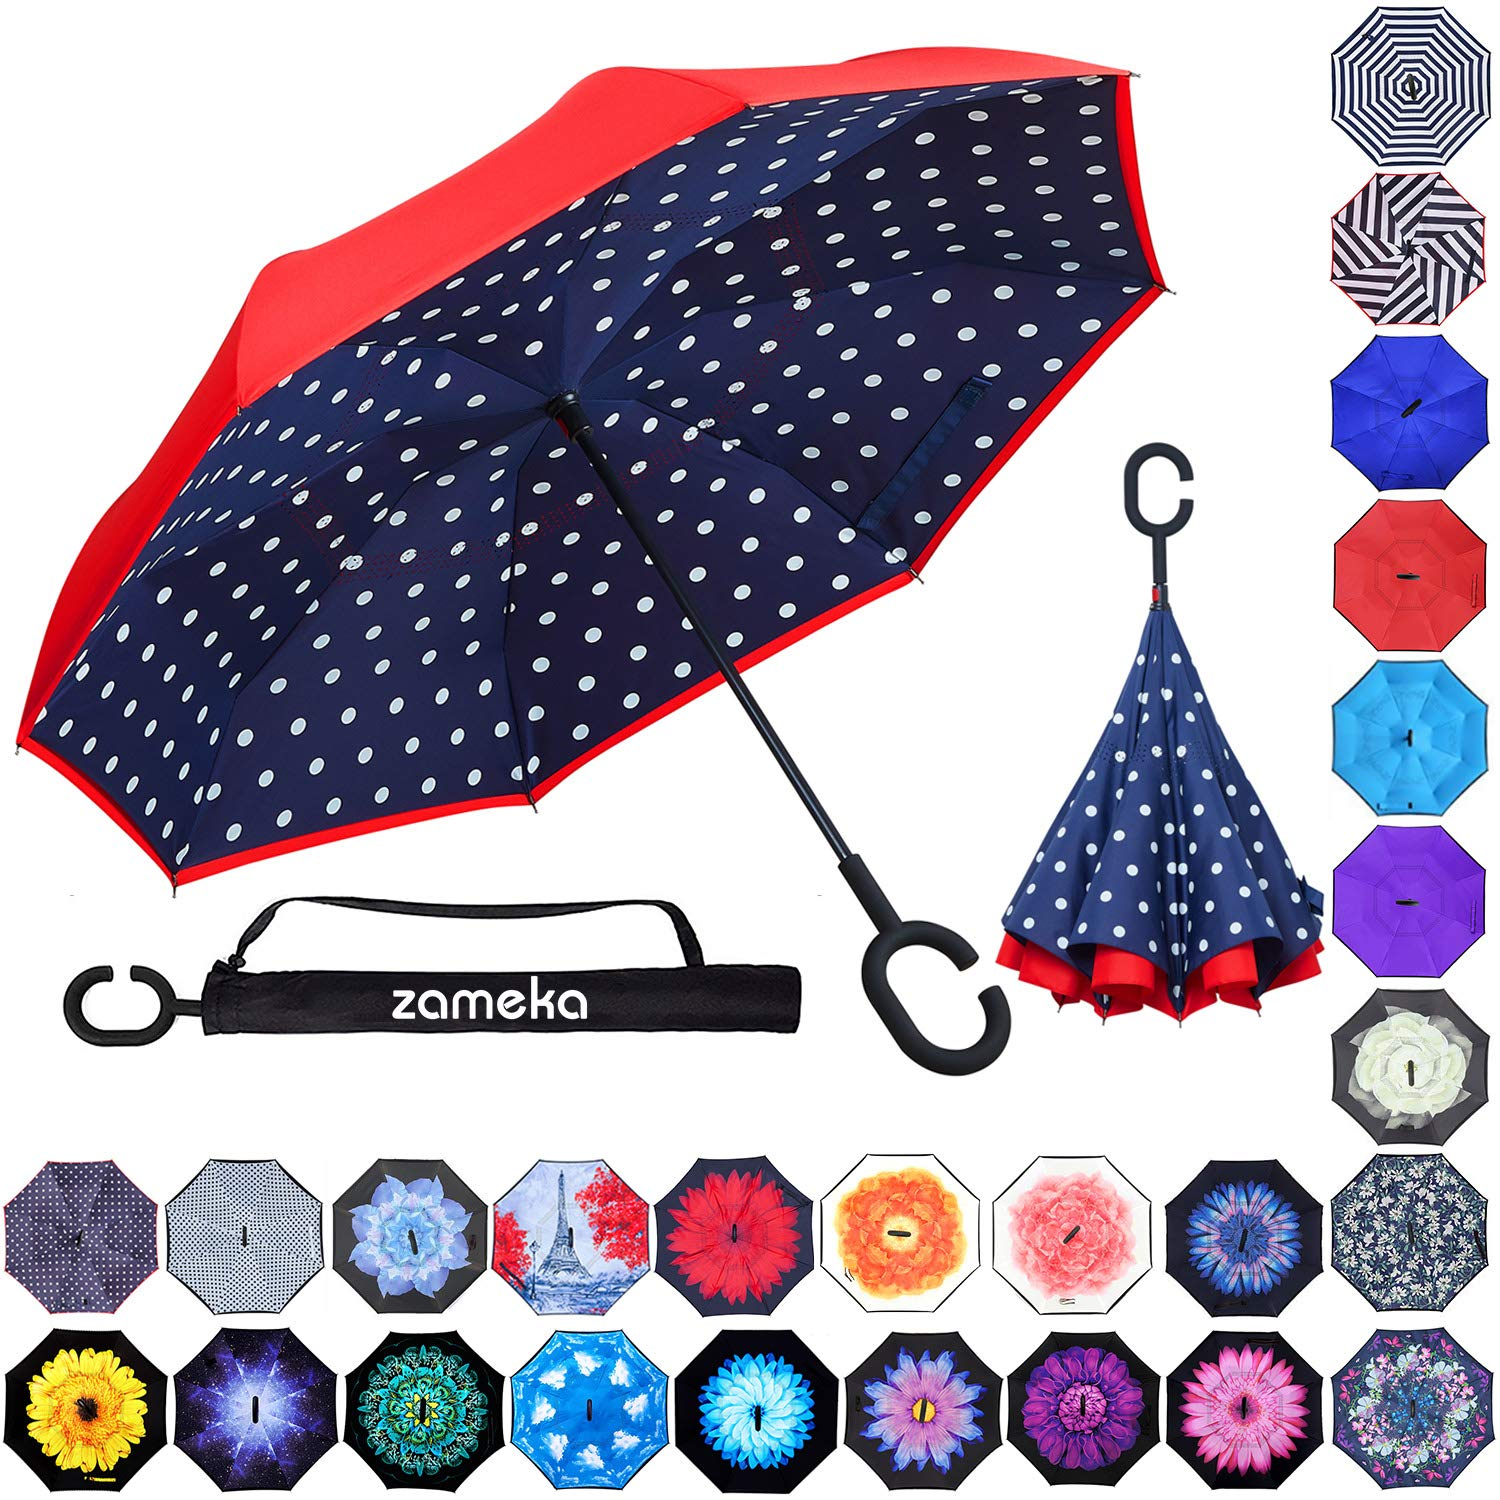 Zameka Double Layer Inverted Umbrellas Reverse Folding Umbrella Windproof UV Protection Big Straight Umbrella Inside Out Upside Down for Car Rain Outdoor with C-Shaped Handle (Blue Dot) by Z ZAMEKA